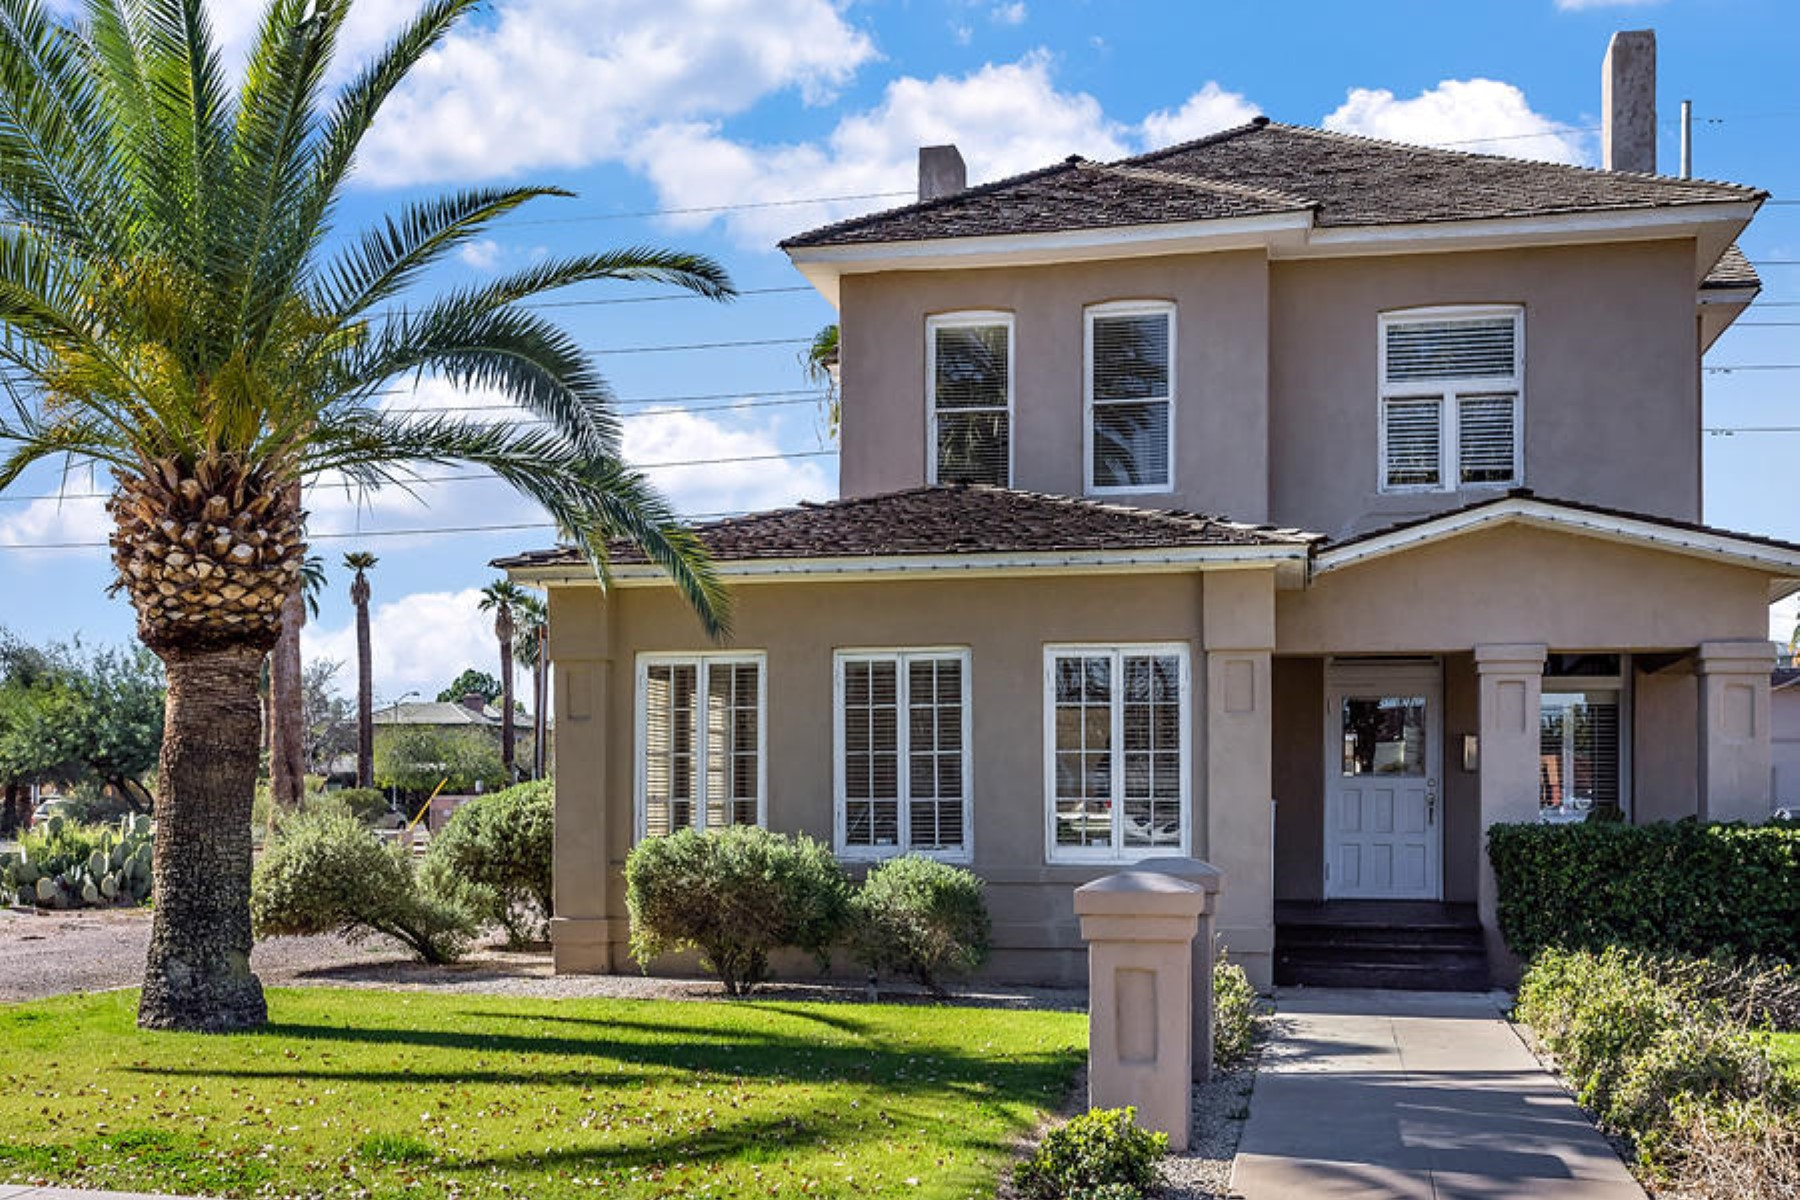 Villa per Vendita alle ore Beautiful two-story property located in the Roosevelt Historic District 812 N 2nd Ave Phoenix, Arizona, 85003 Stati Uniti